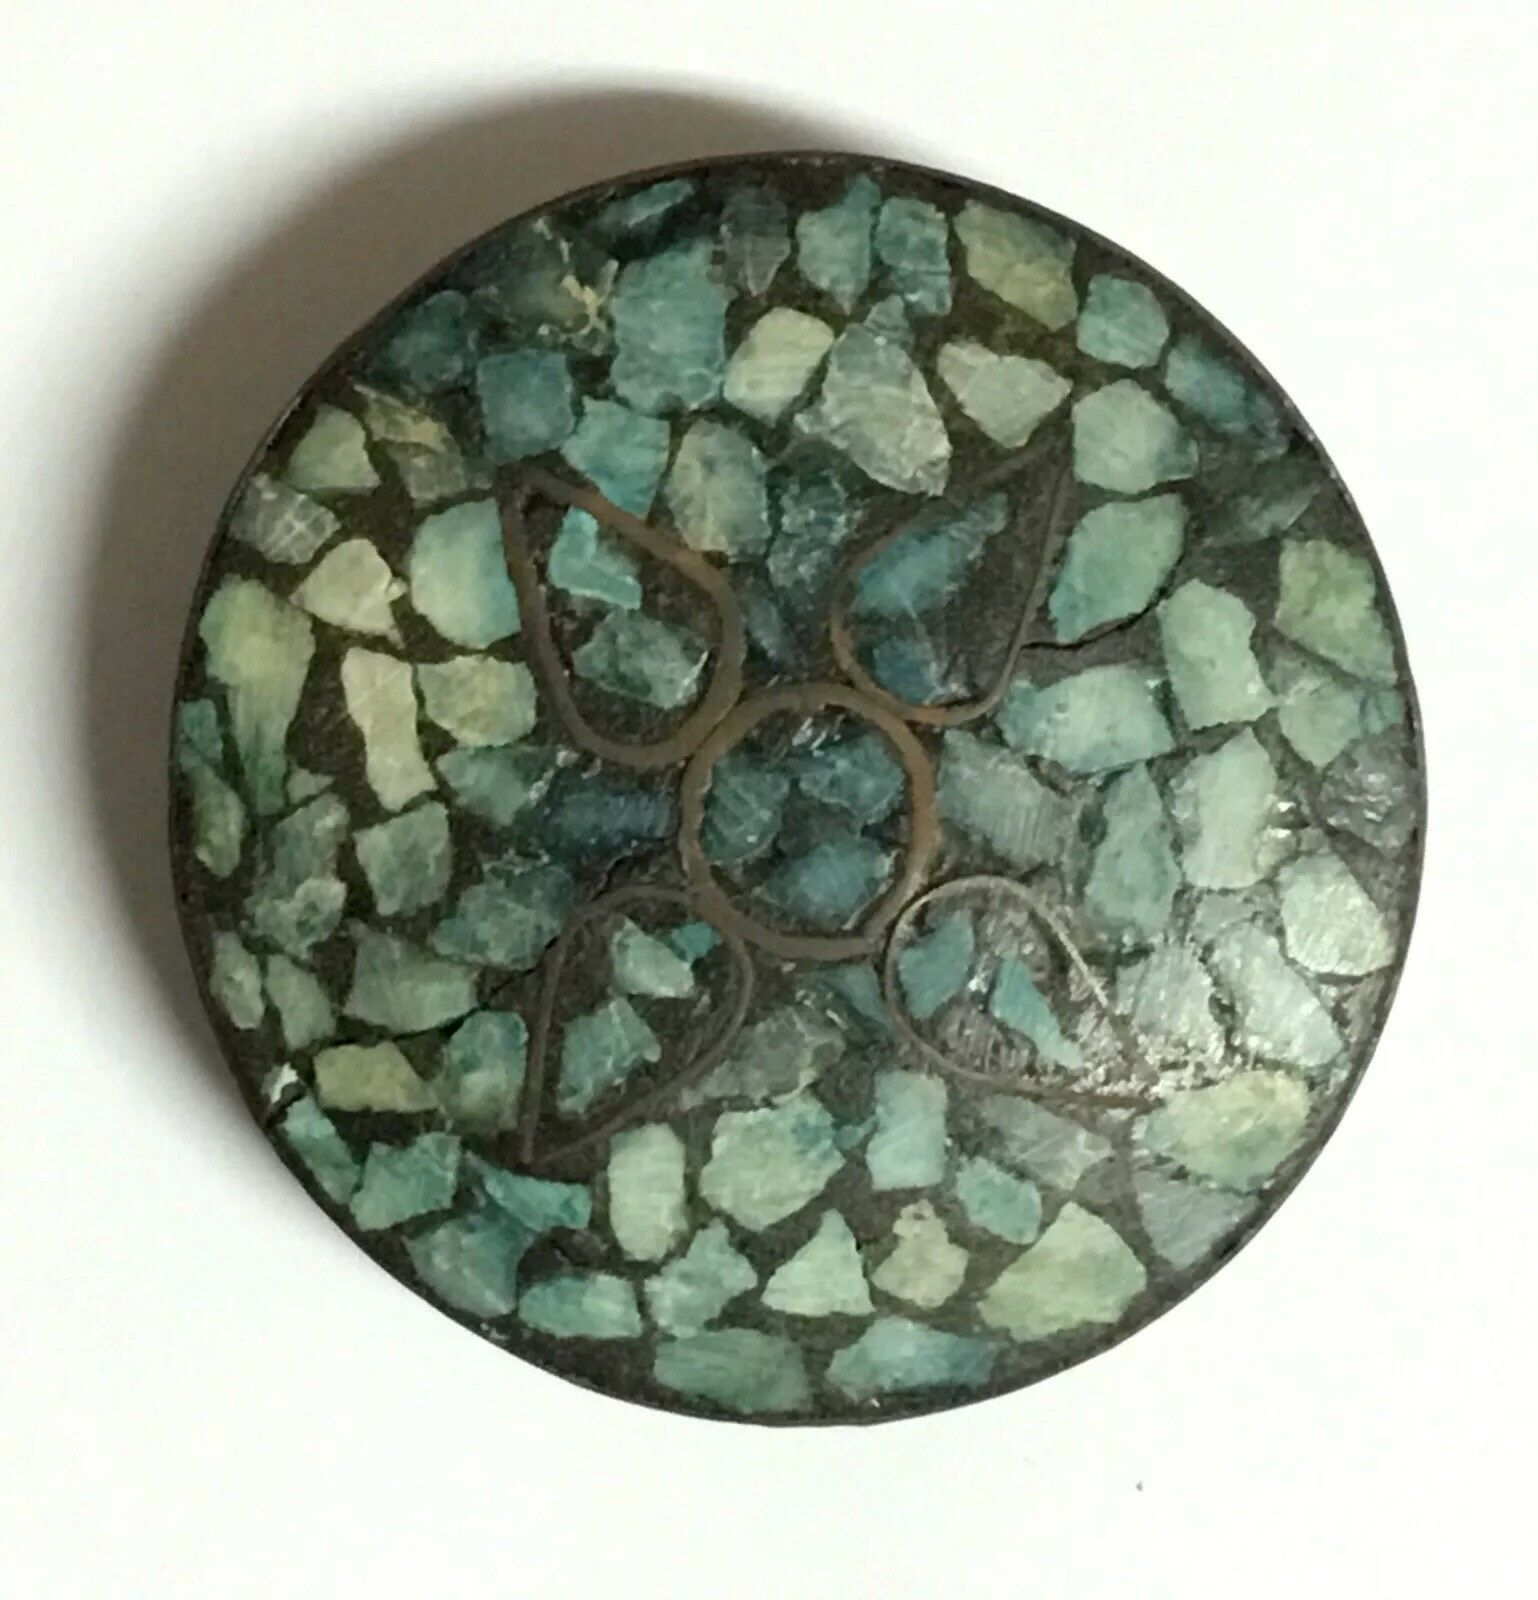 Vintage East Indian Turquoise Inlay Pendant in a Matrix Brass Design made 1940's